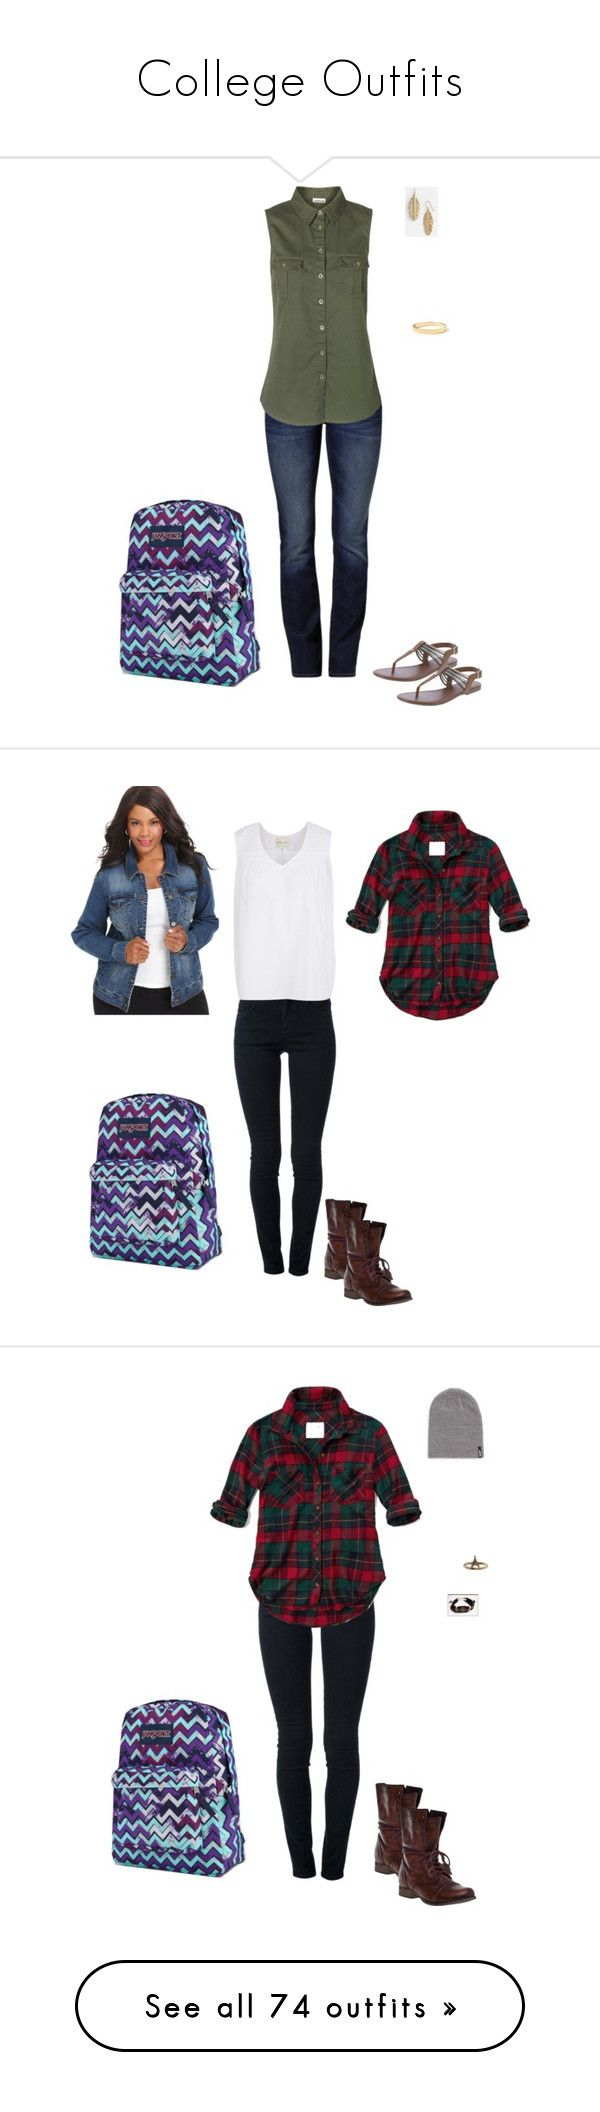 """College Outfits"" by maddieshu on Polyvore featuring Mavi, Vero Moda, Melinda Maria, Kate Spade, JanSport, STELLA McCARTNEY, Abercrombie & Fitch, Style & Co., Steve Madden and Vans"